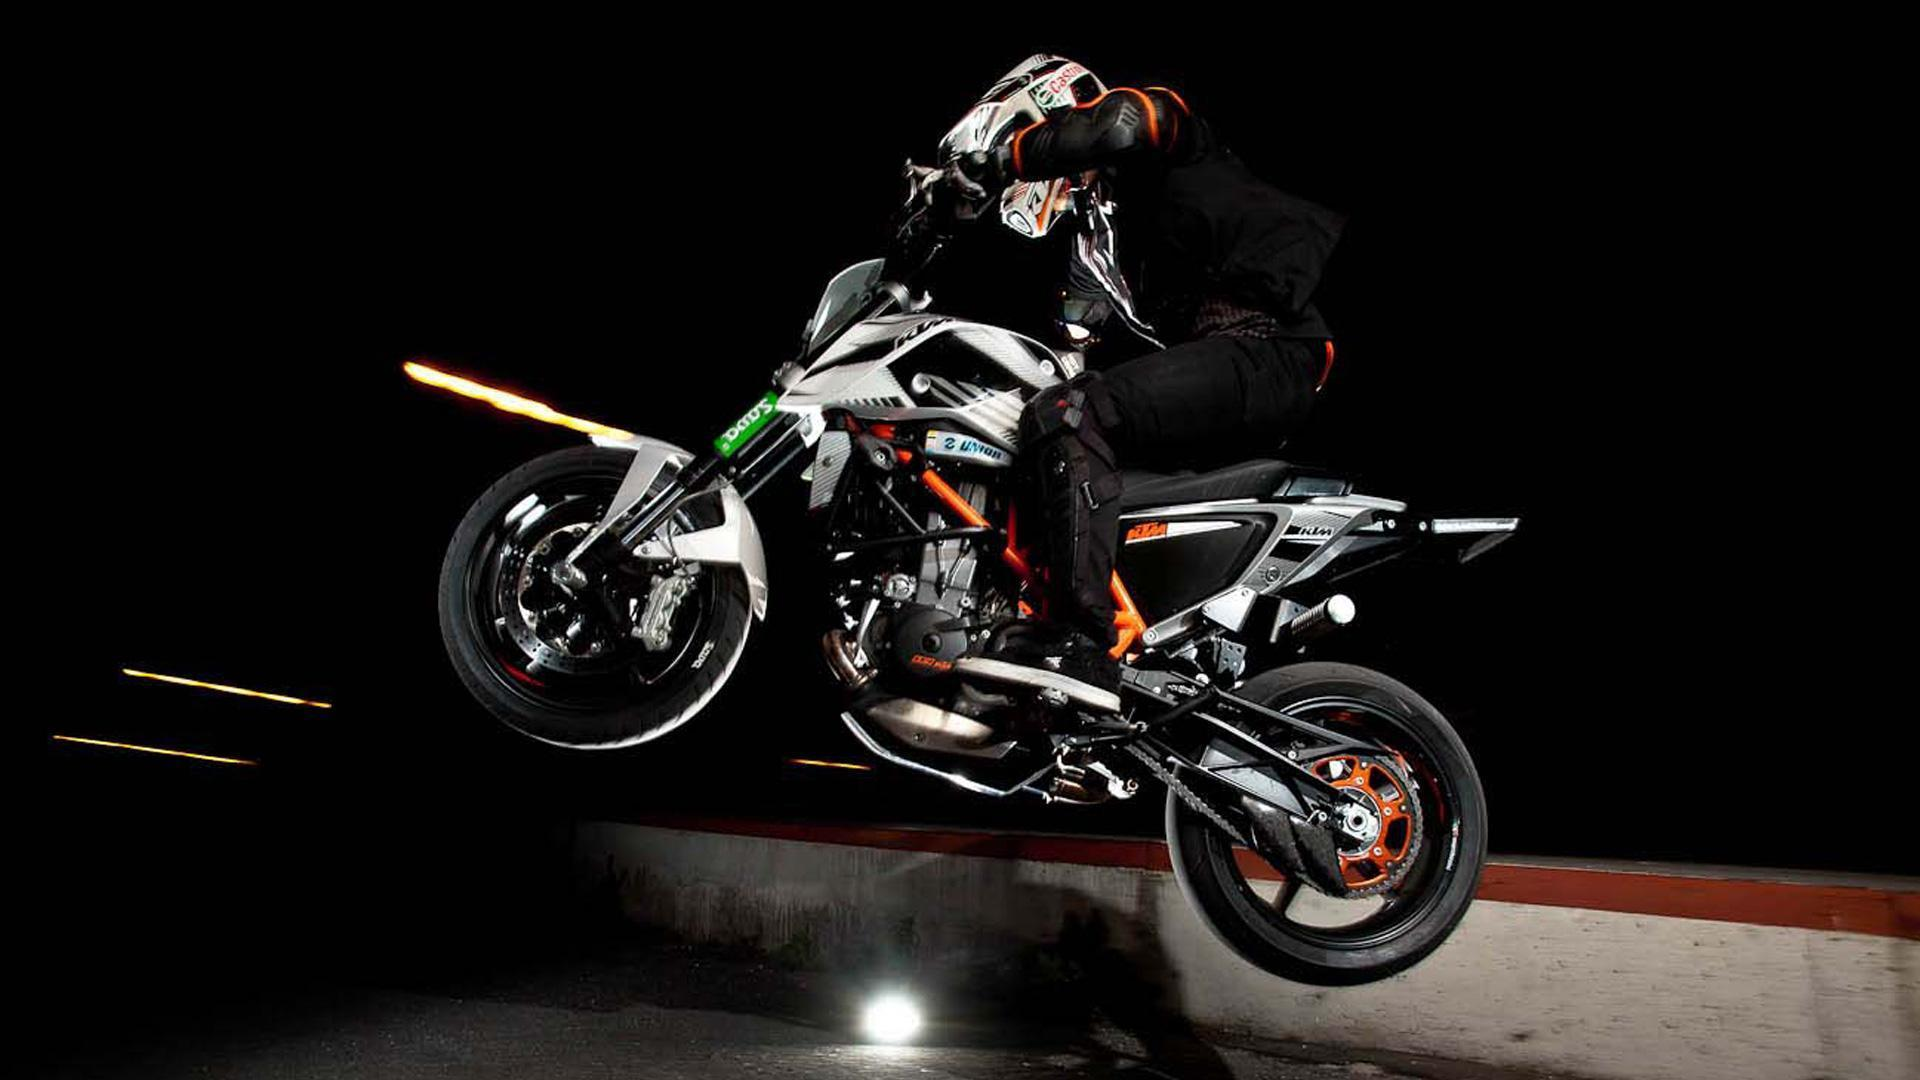 stunt bikes wallpapers - wallpaper cave